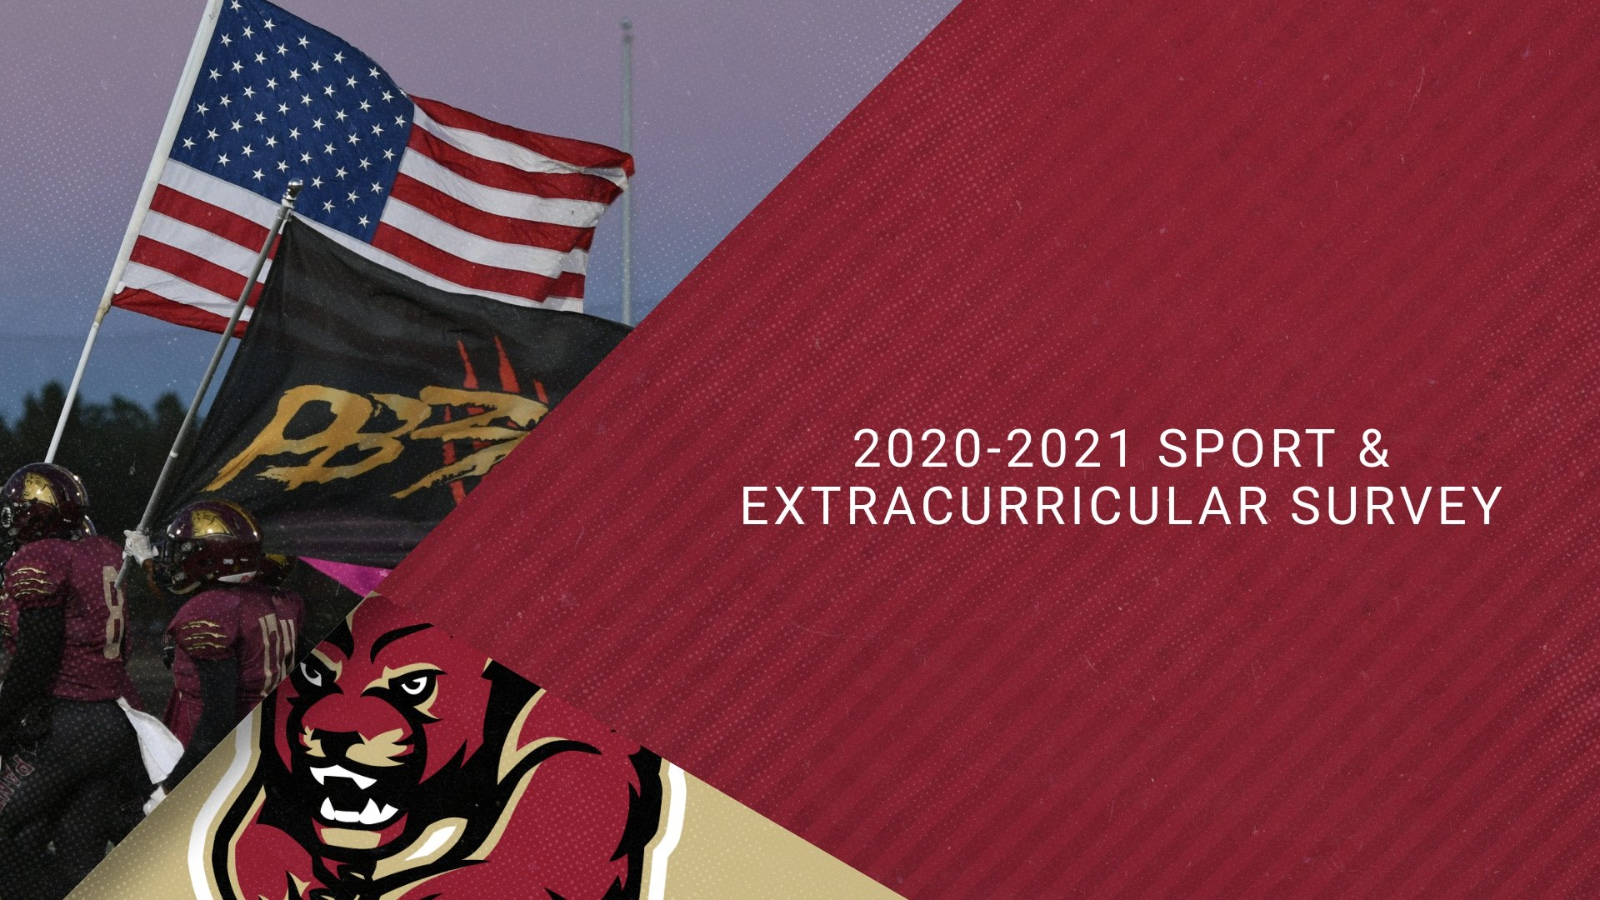 2020-2021 Sport and Extracurricular Interest Survey